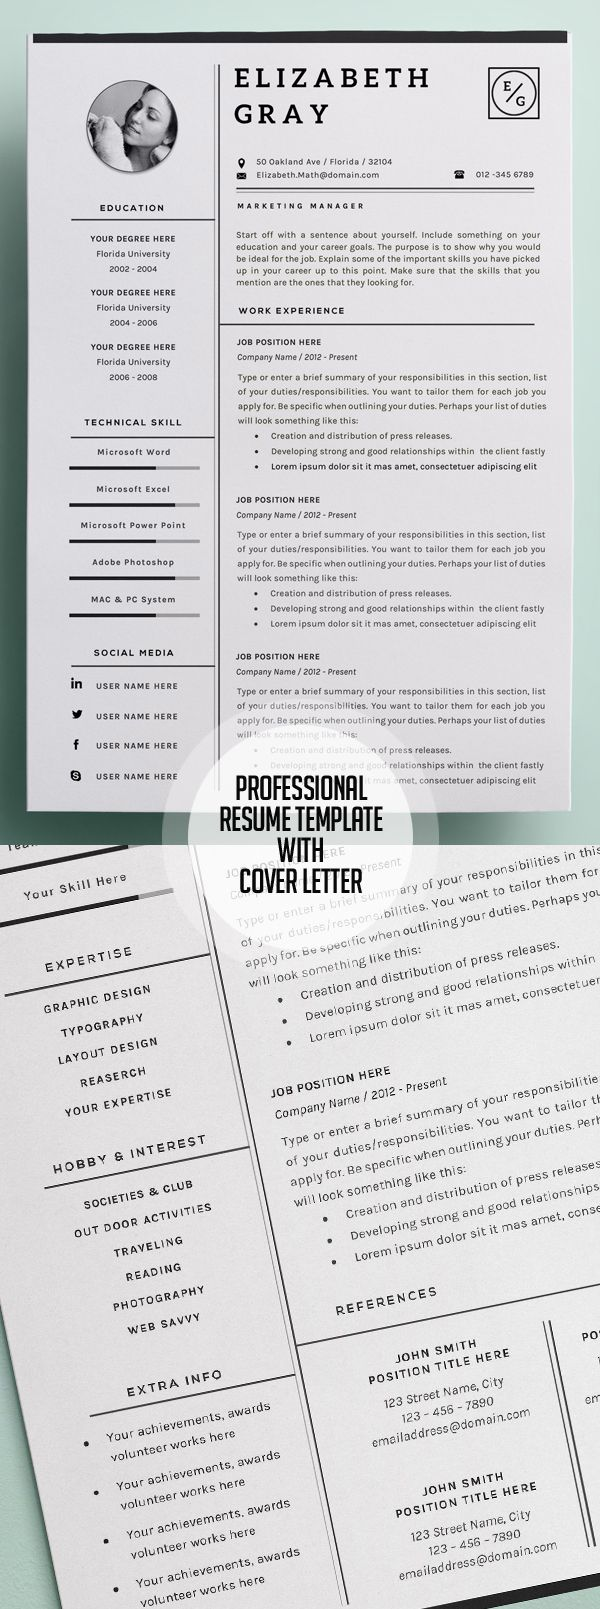 Opposenewapstandardsus  Marvelous  Resume Ideas On Pinterest  Resume Resume Templates And  With Goodlooking Professional And Modern Resume Template With Page Cover Cvtemplate With Lovely Director Of Human Resources Resume Also Resume Job Titles In Addition Resume Html Template And Pics Of Resumes As Well As Got Resume Additionally Resumes For High School Students With No Work Experience From Pinterestcom With Opposenewapstandardsus  Goodlooking  Resume Ideas On Pinterest  Resume Resume Templates And  With Lovely Professional And Modern Resume Template With Page Cover Cvtemplate And Marvelous Director Of Human Resources Resume Also Resume Job Titles In Addition Resume Html Template From Pinterestcom